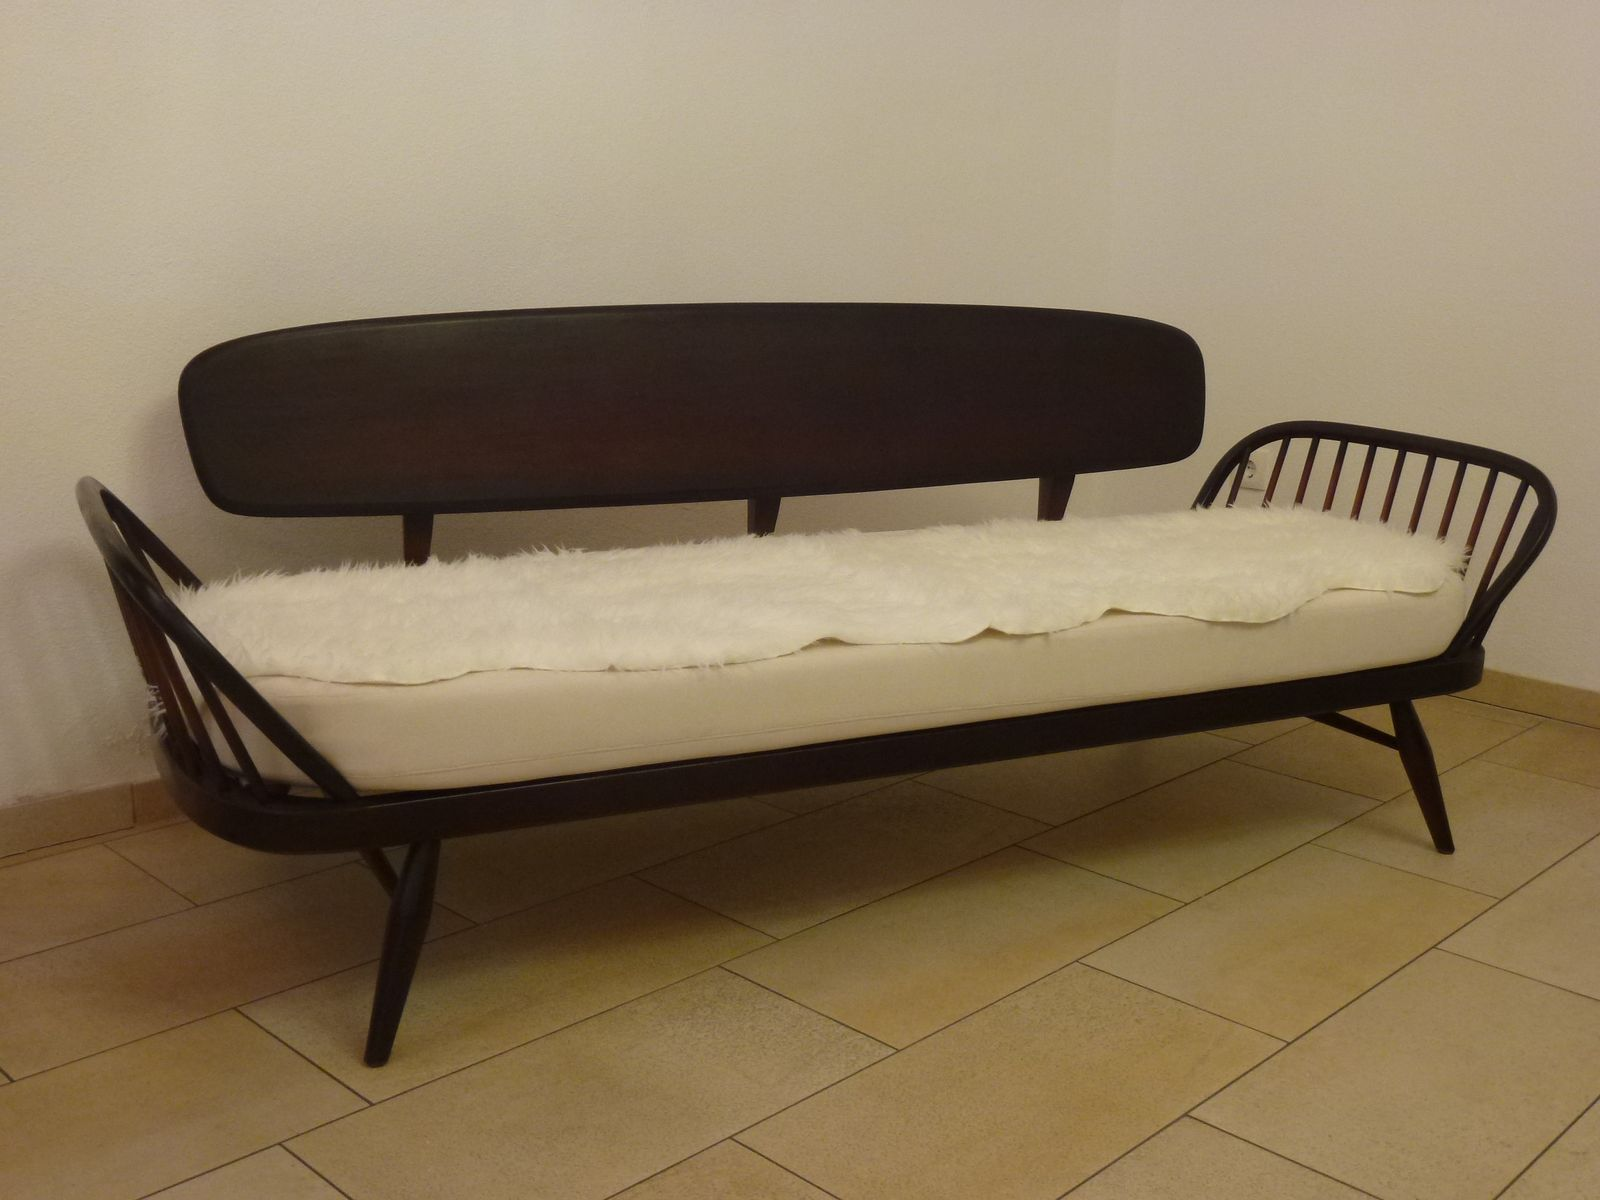 englisches sofa von lucian ercolani f r ercol 1950er bei pamono kaufen. Black Bedroom Furniture Sets. Home Design Ideas